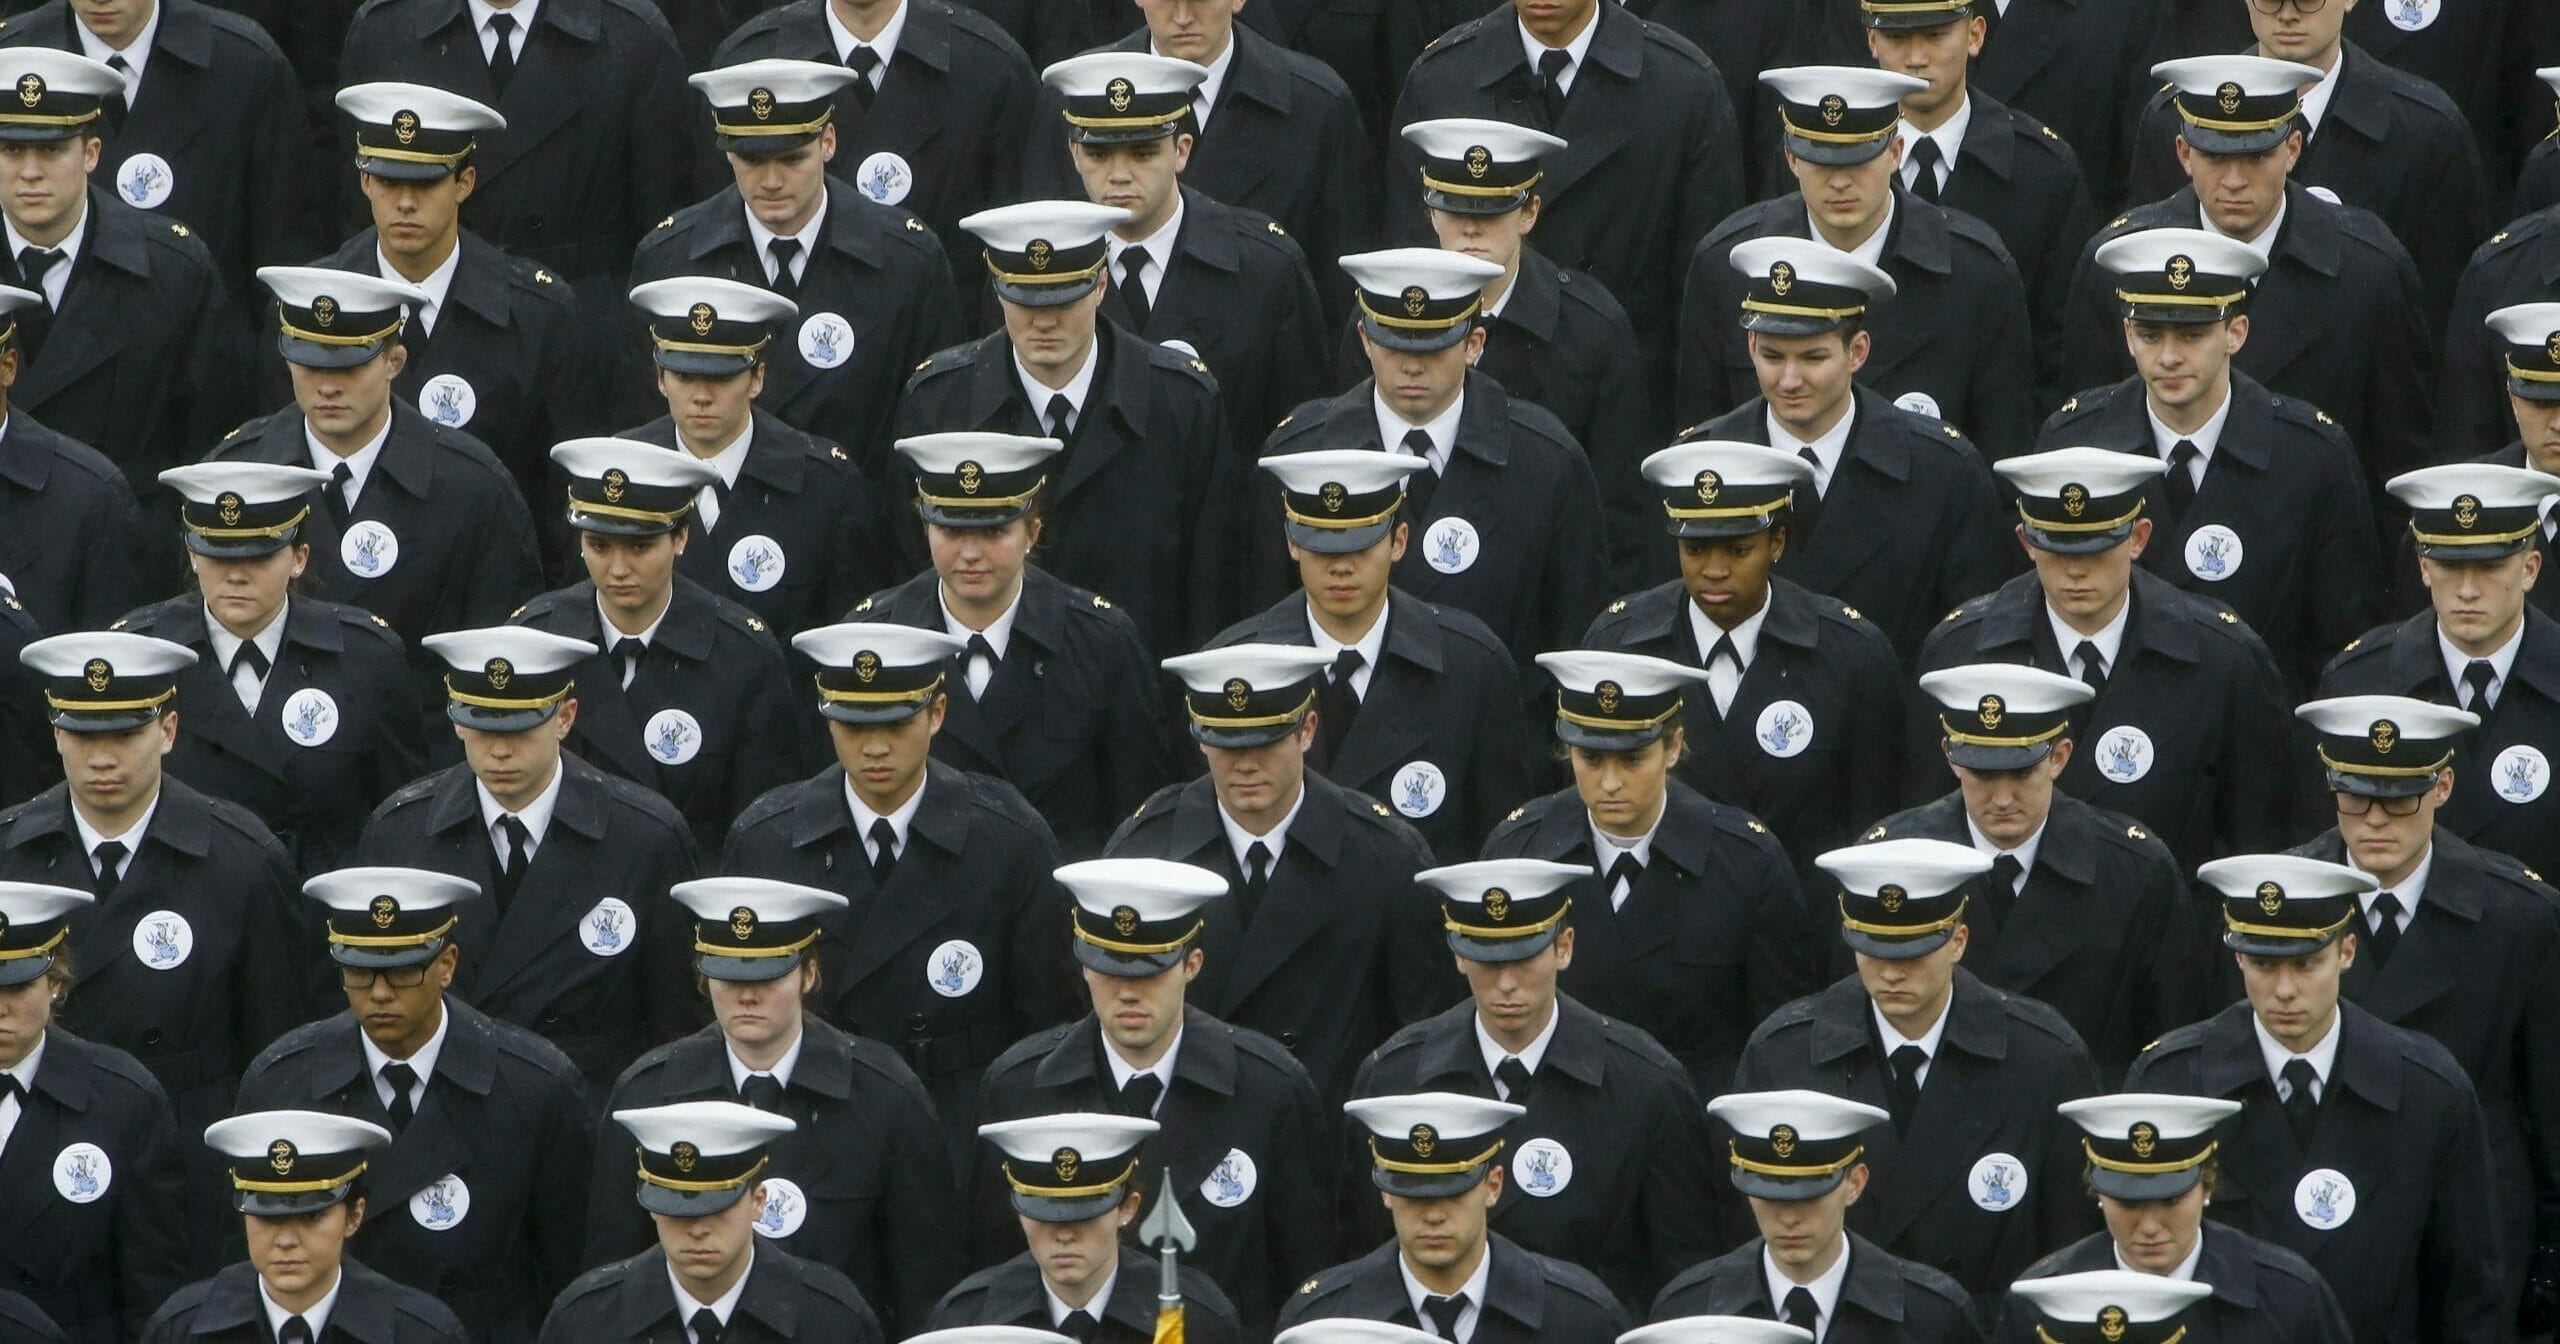 Navy midshipmen march onto the field ahead of the college football game between Army and Navy in Philadelphia on Dec. 14, 2019.